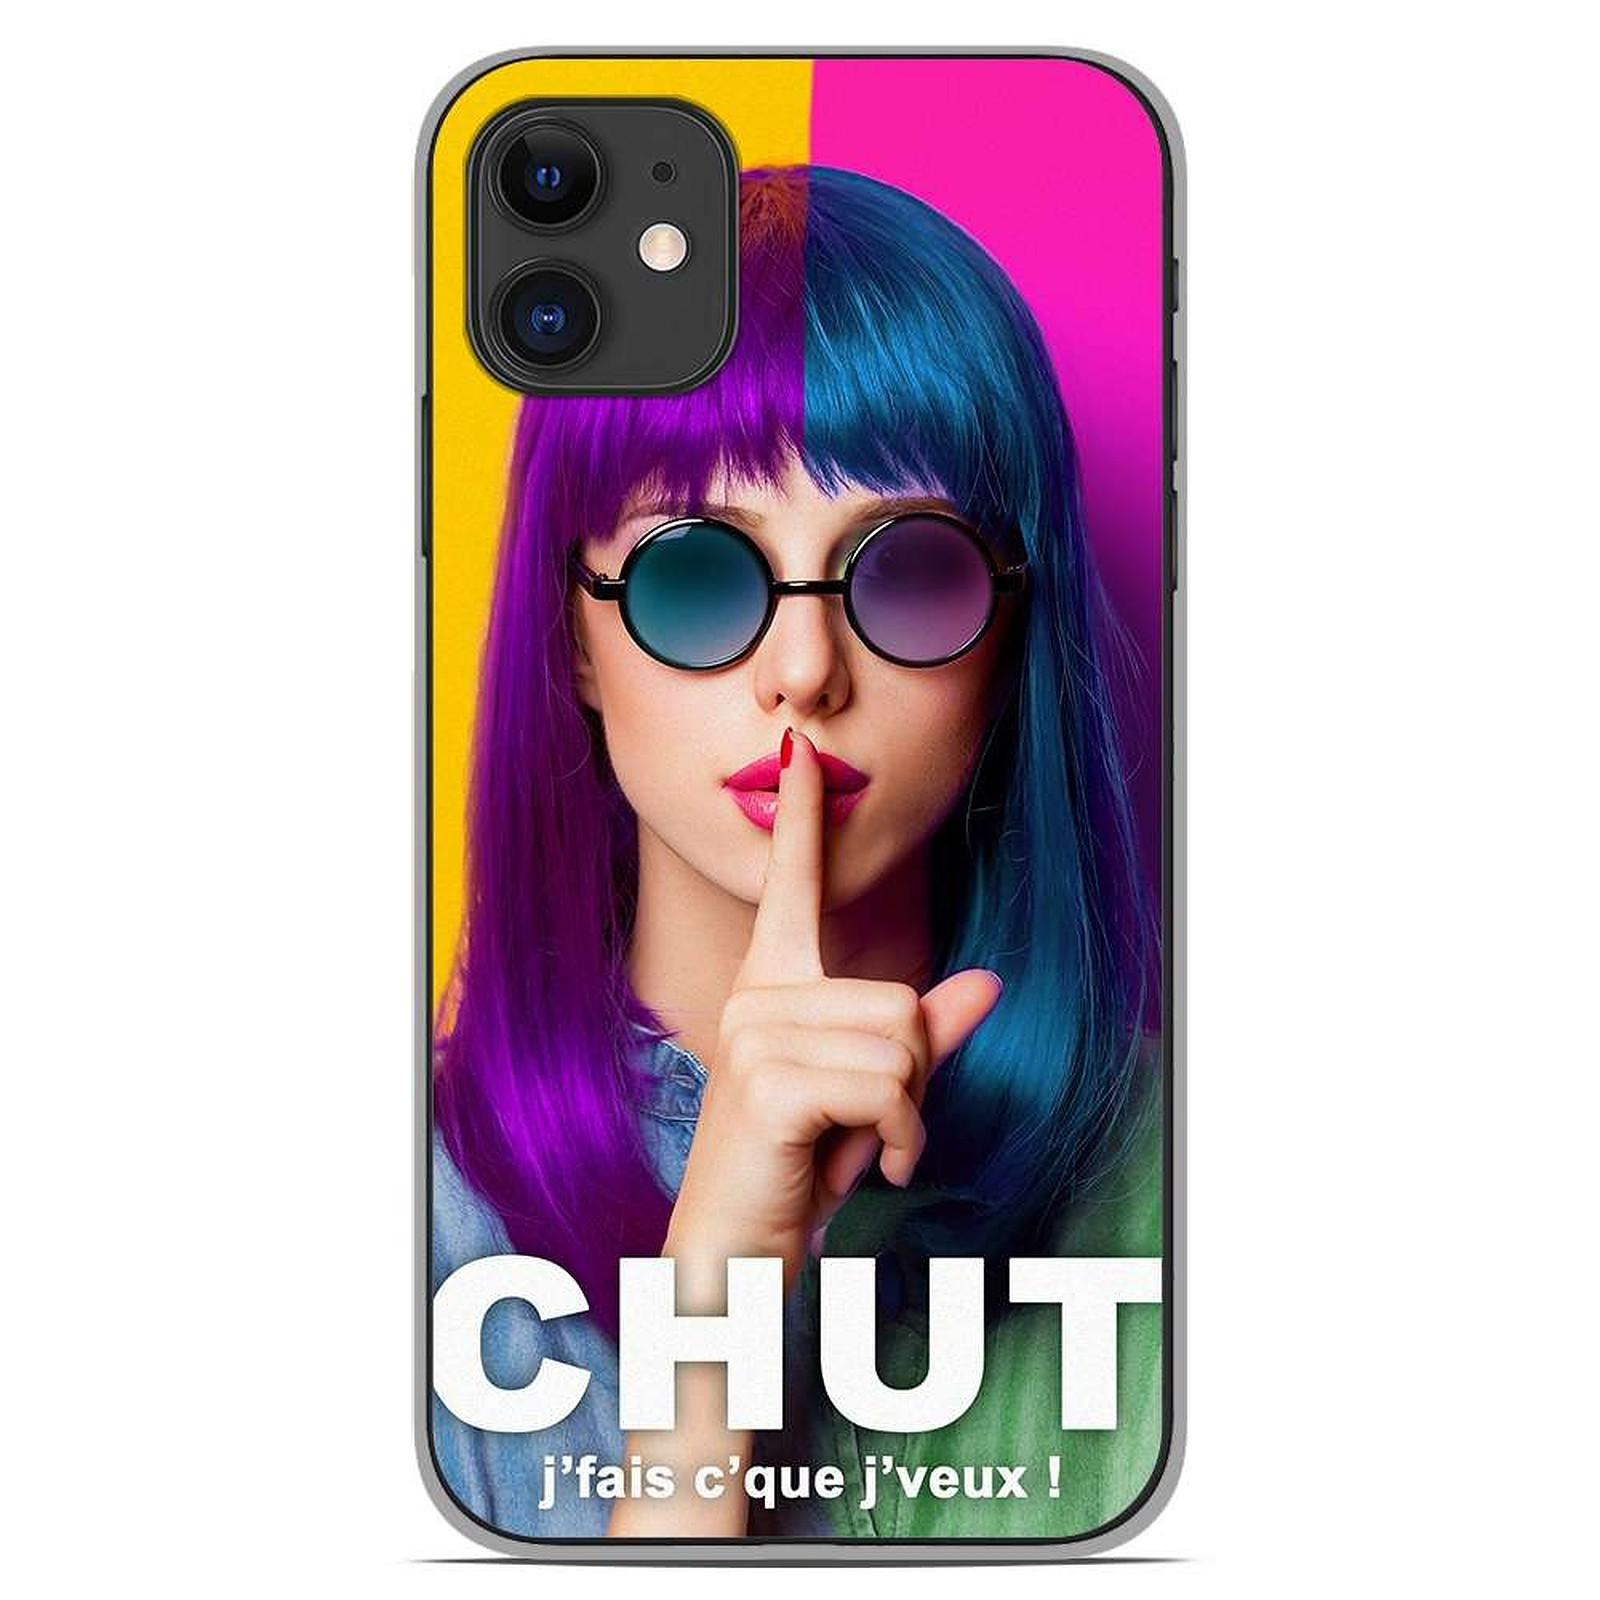 1001 Coques Coque silicone gel Apple iPhone 11 motif Chut